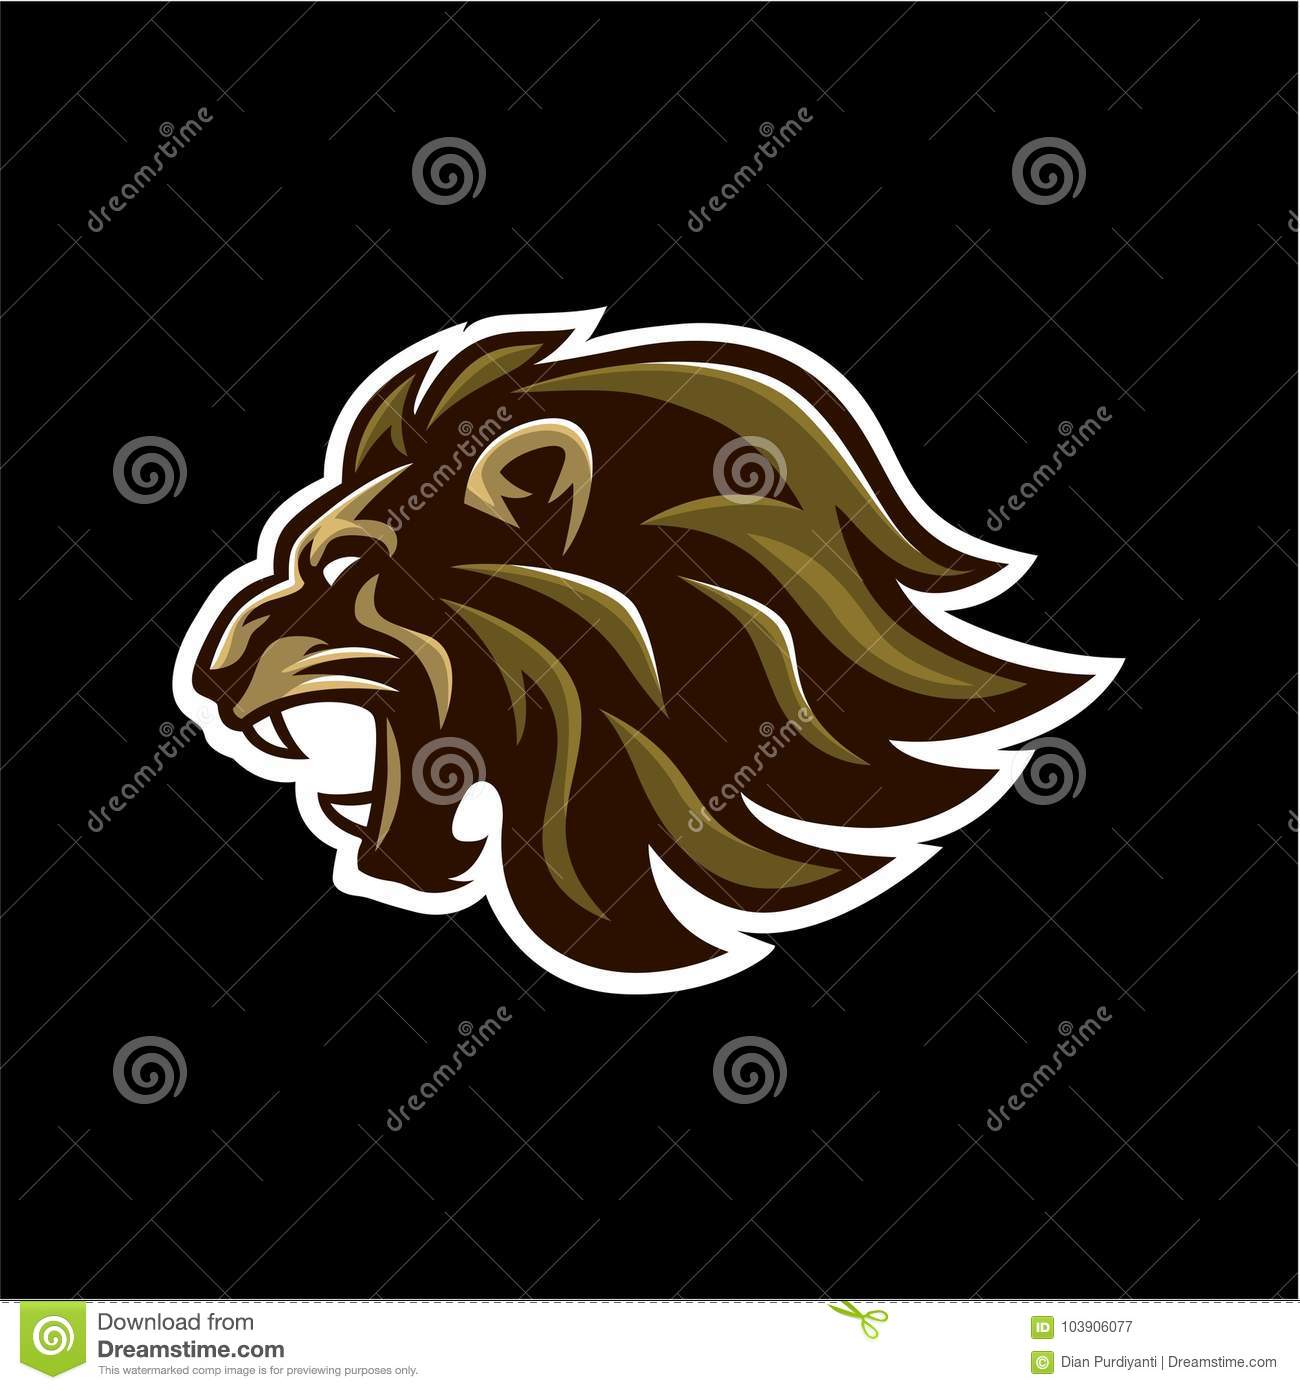 Angry Roaring Lion Head Black Background Vector Logo Design